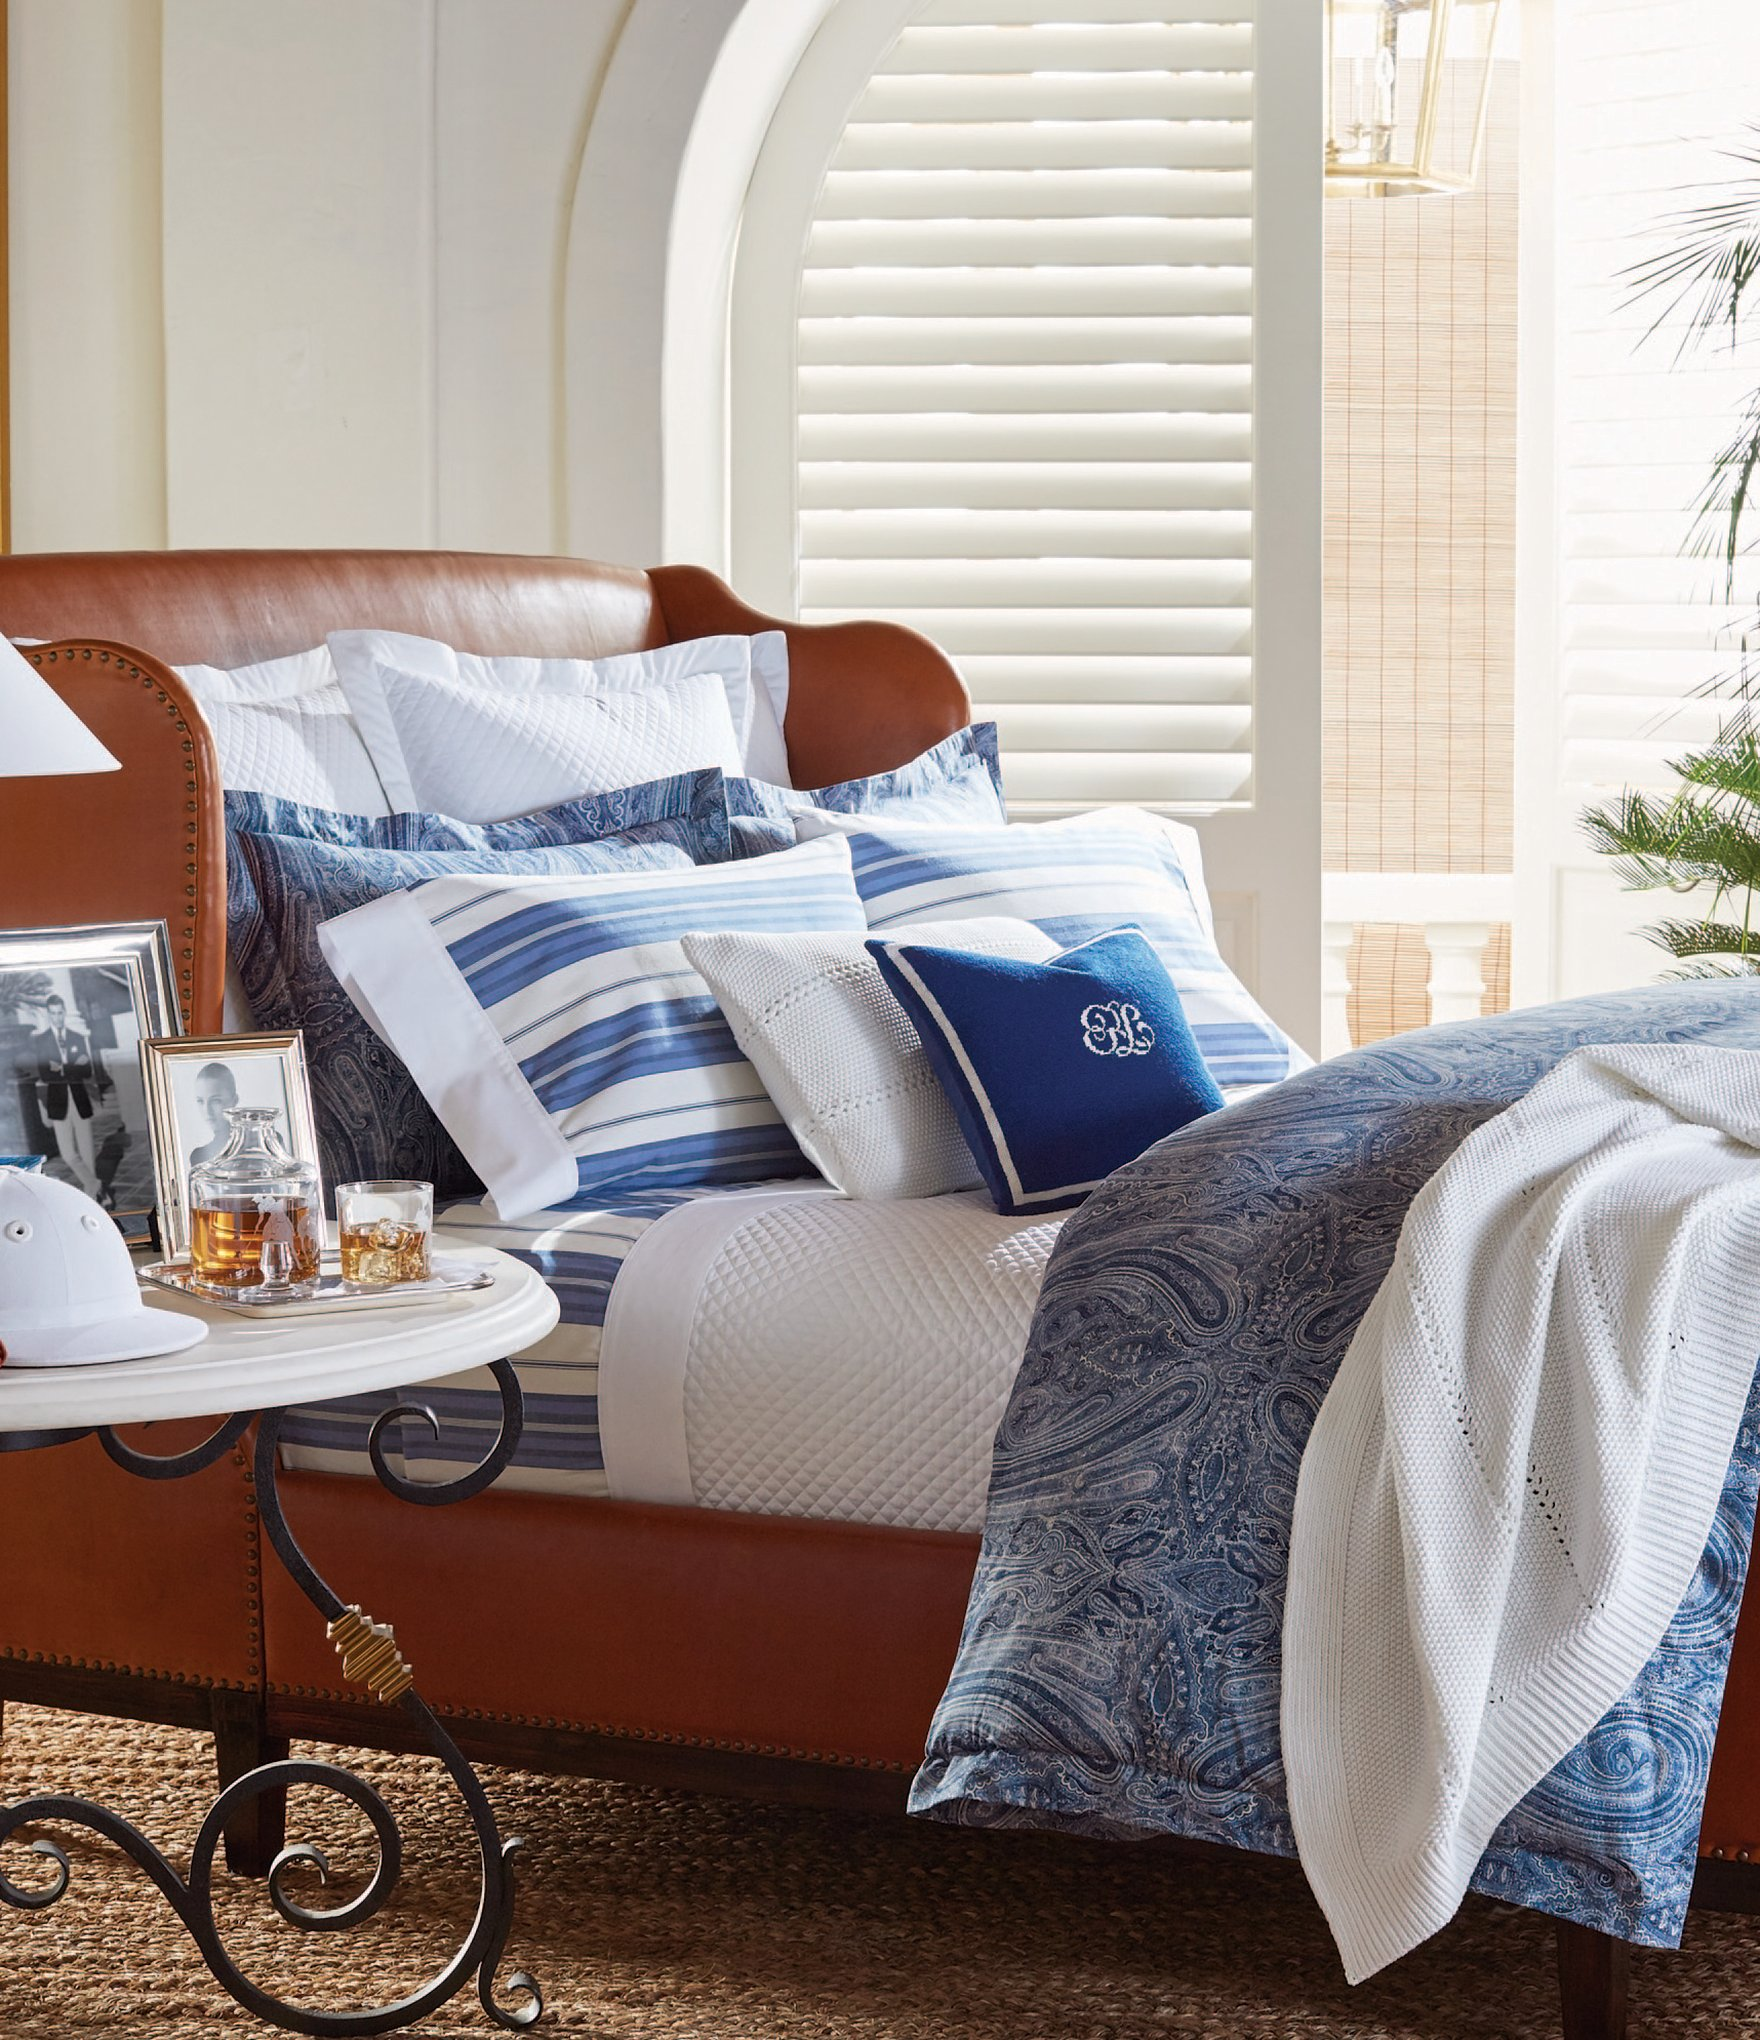 Find great deals on eBay for Ralph Lauren Kids Bedding in Child and Teen Sheets. Shop with confidence.